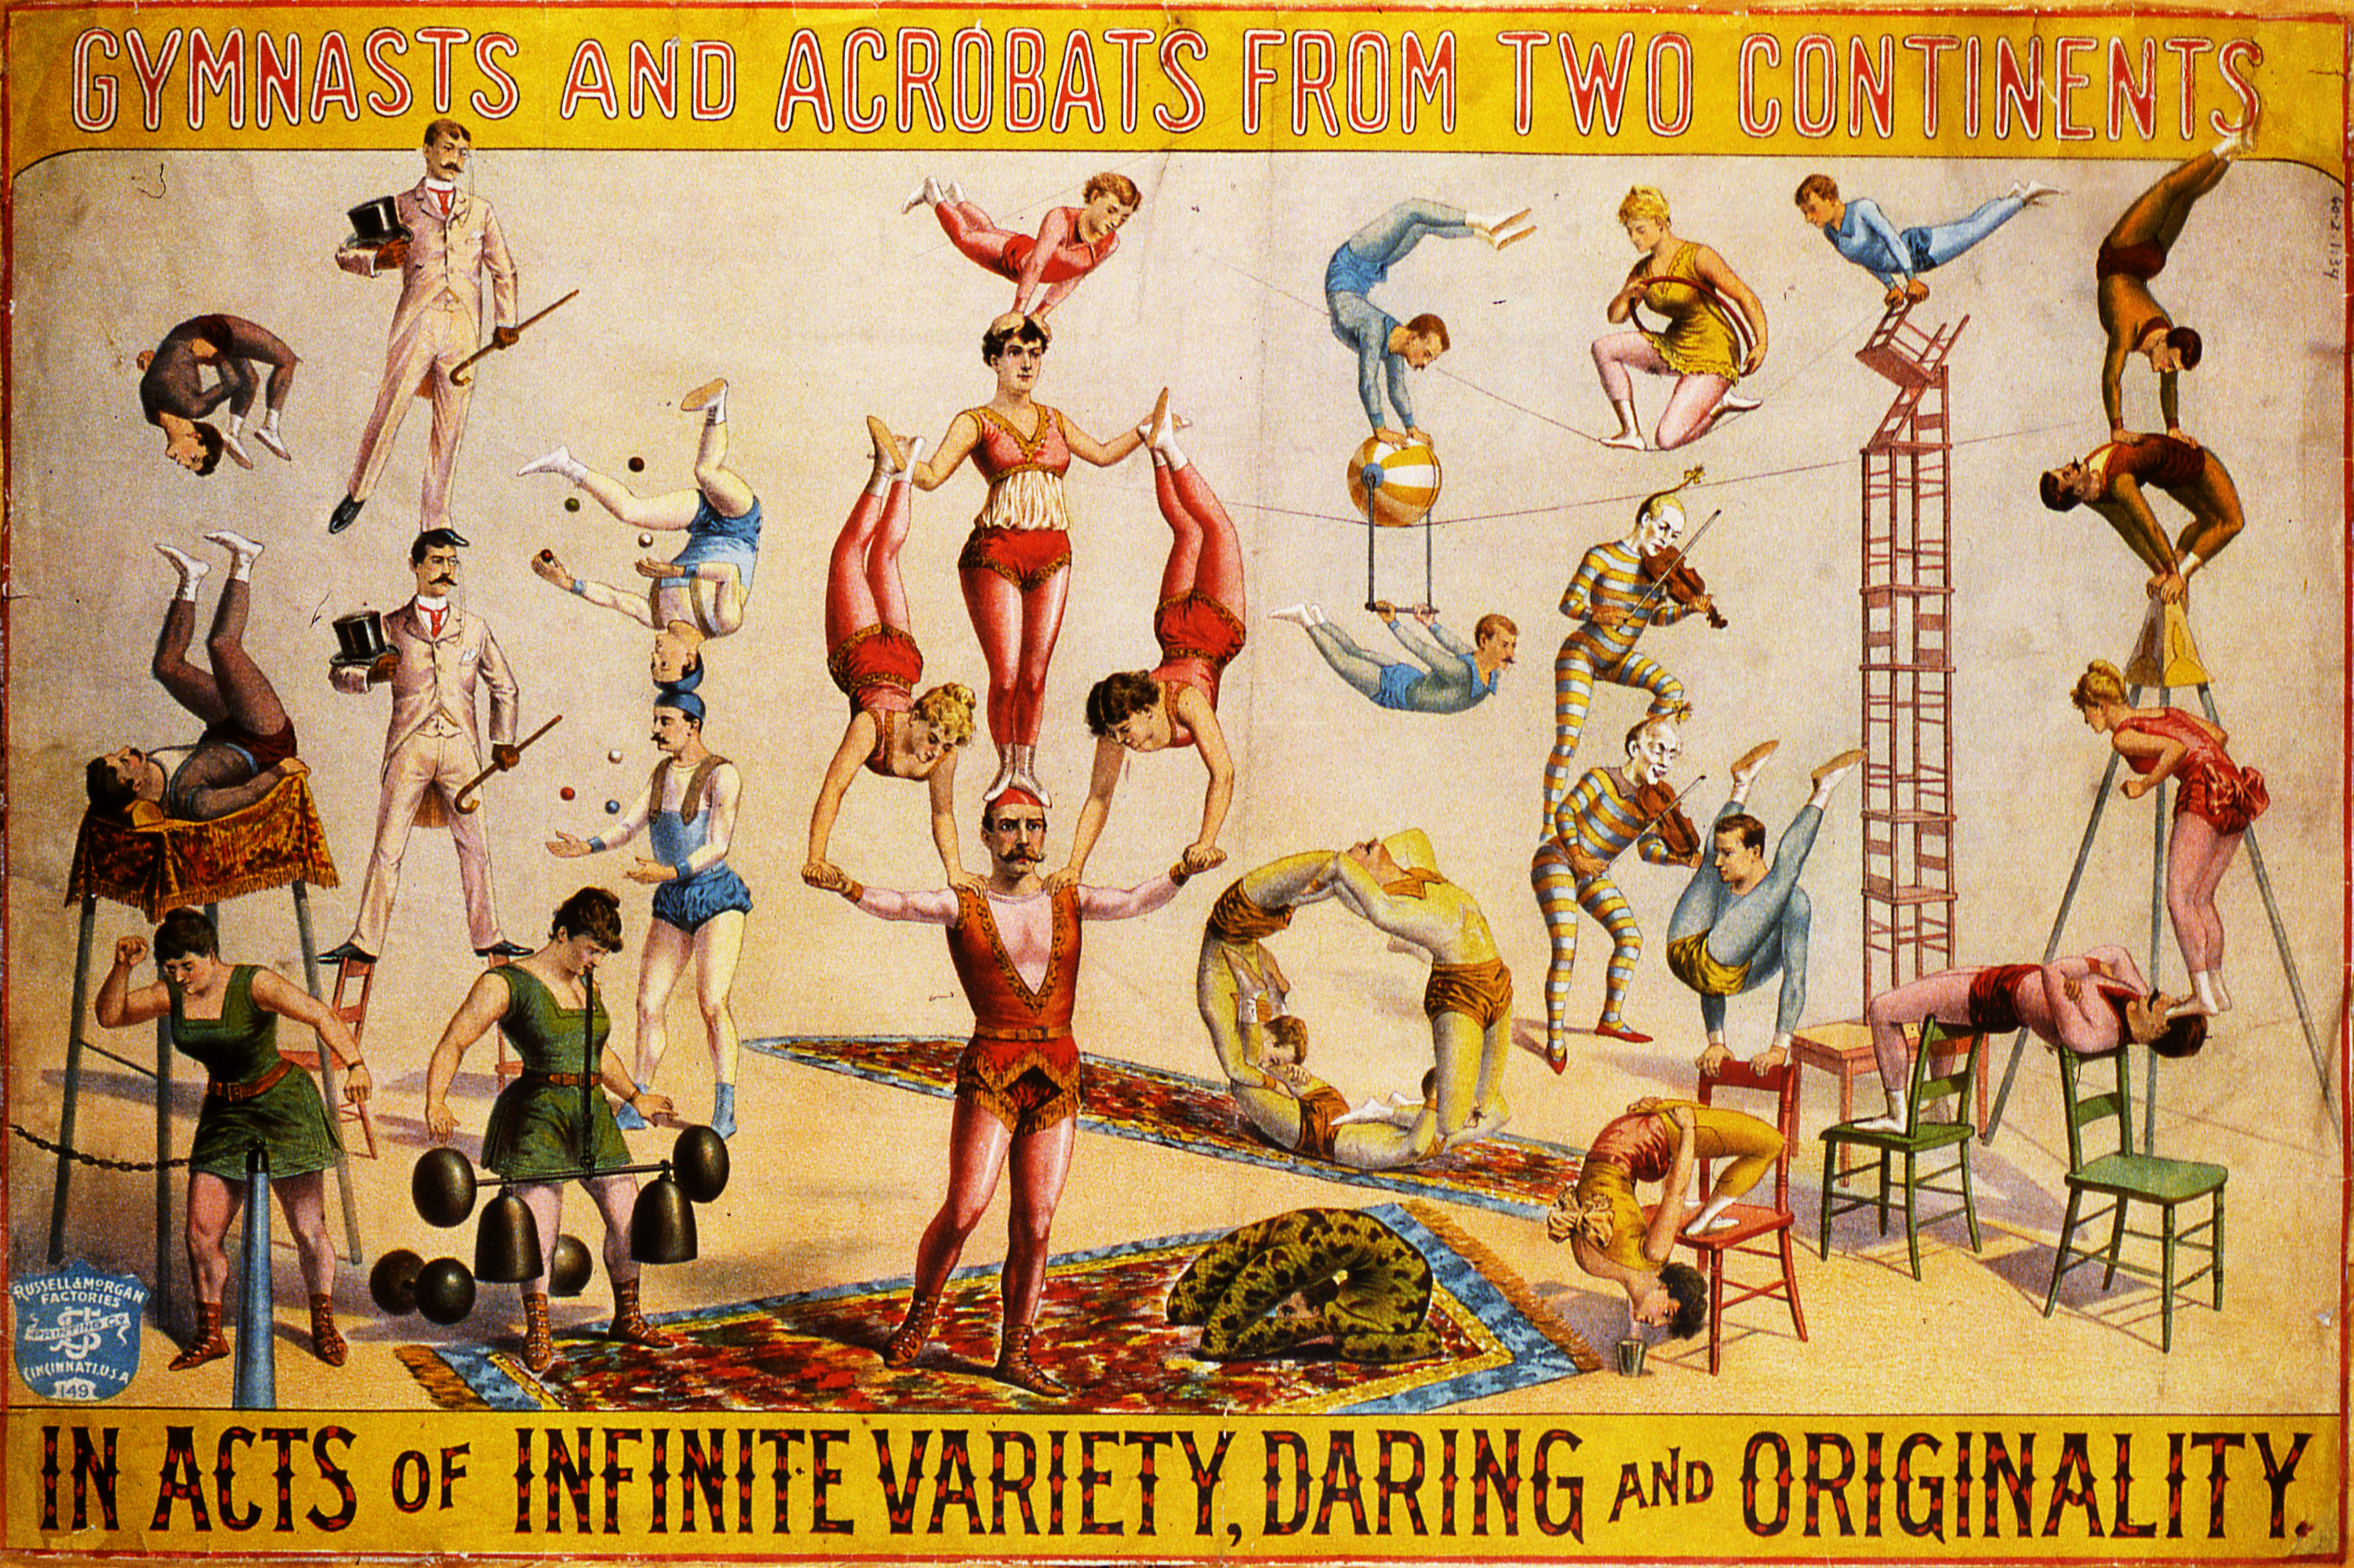 Circus poster features the text 'Gymnasts and Acrobats from Two Continents in Acts of Infinite Variety, Daring and Originality' and an illustration that depicts 29 people in colorful costumes as they engage in, as advertised, a wide variety of performances, 1890. The poster was printed by the Cincinatti, Ohio-based Russell & Morgan Factories Printing Company.